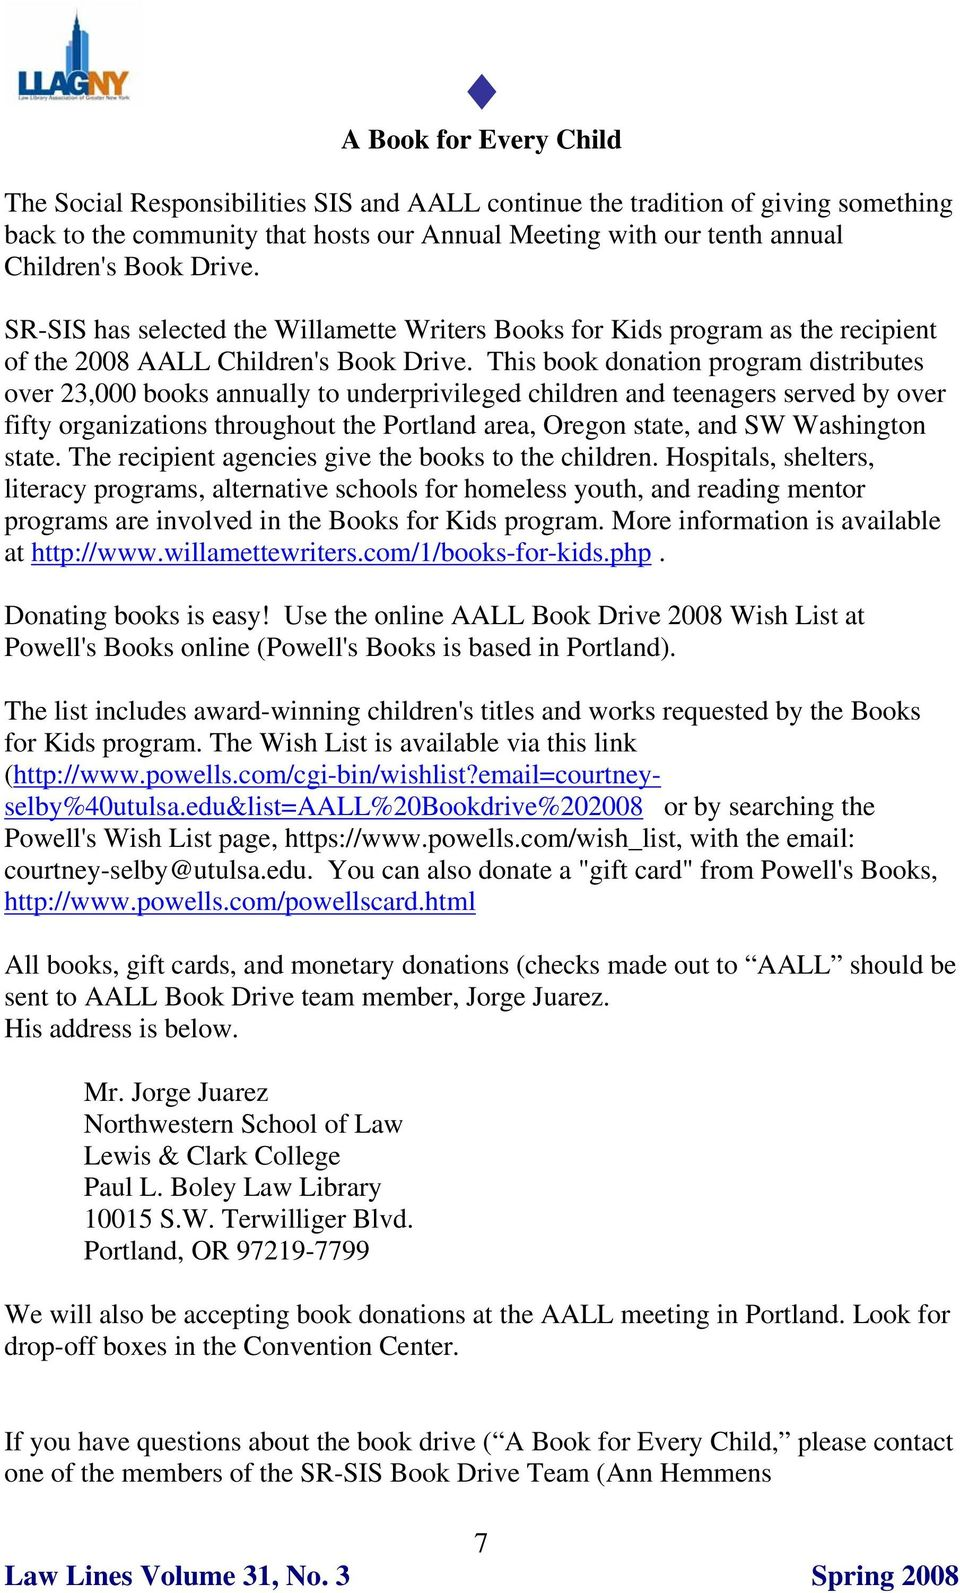 This book donation program distributes over 23,000 books annually to underprivileged children and teenagers served by over fifty organizations throughout the Portland area, Oregon state, and SW